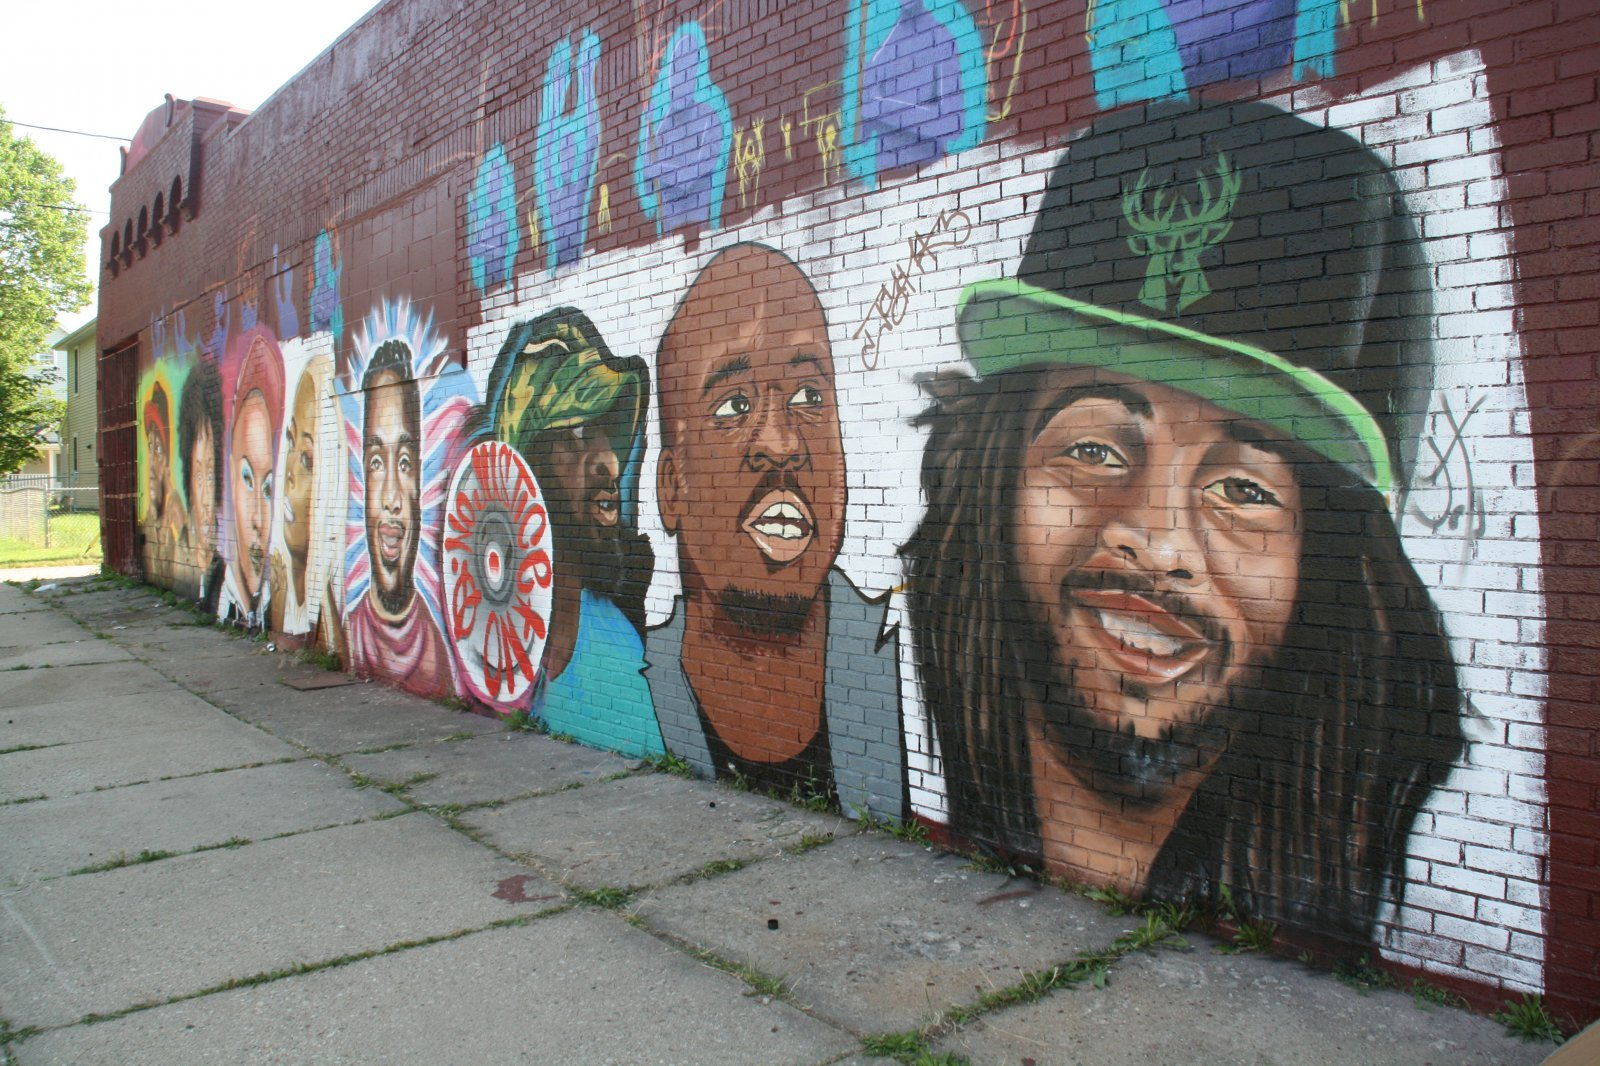 14th and Vliet Mural